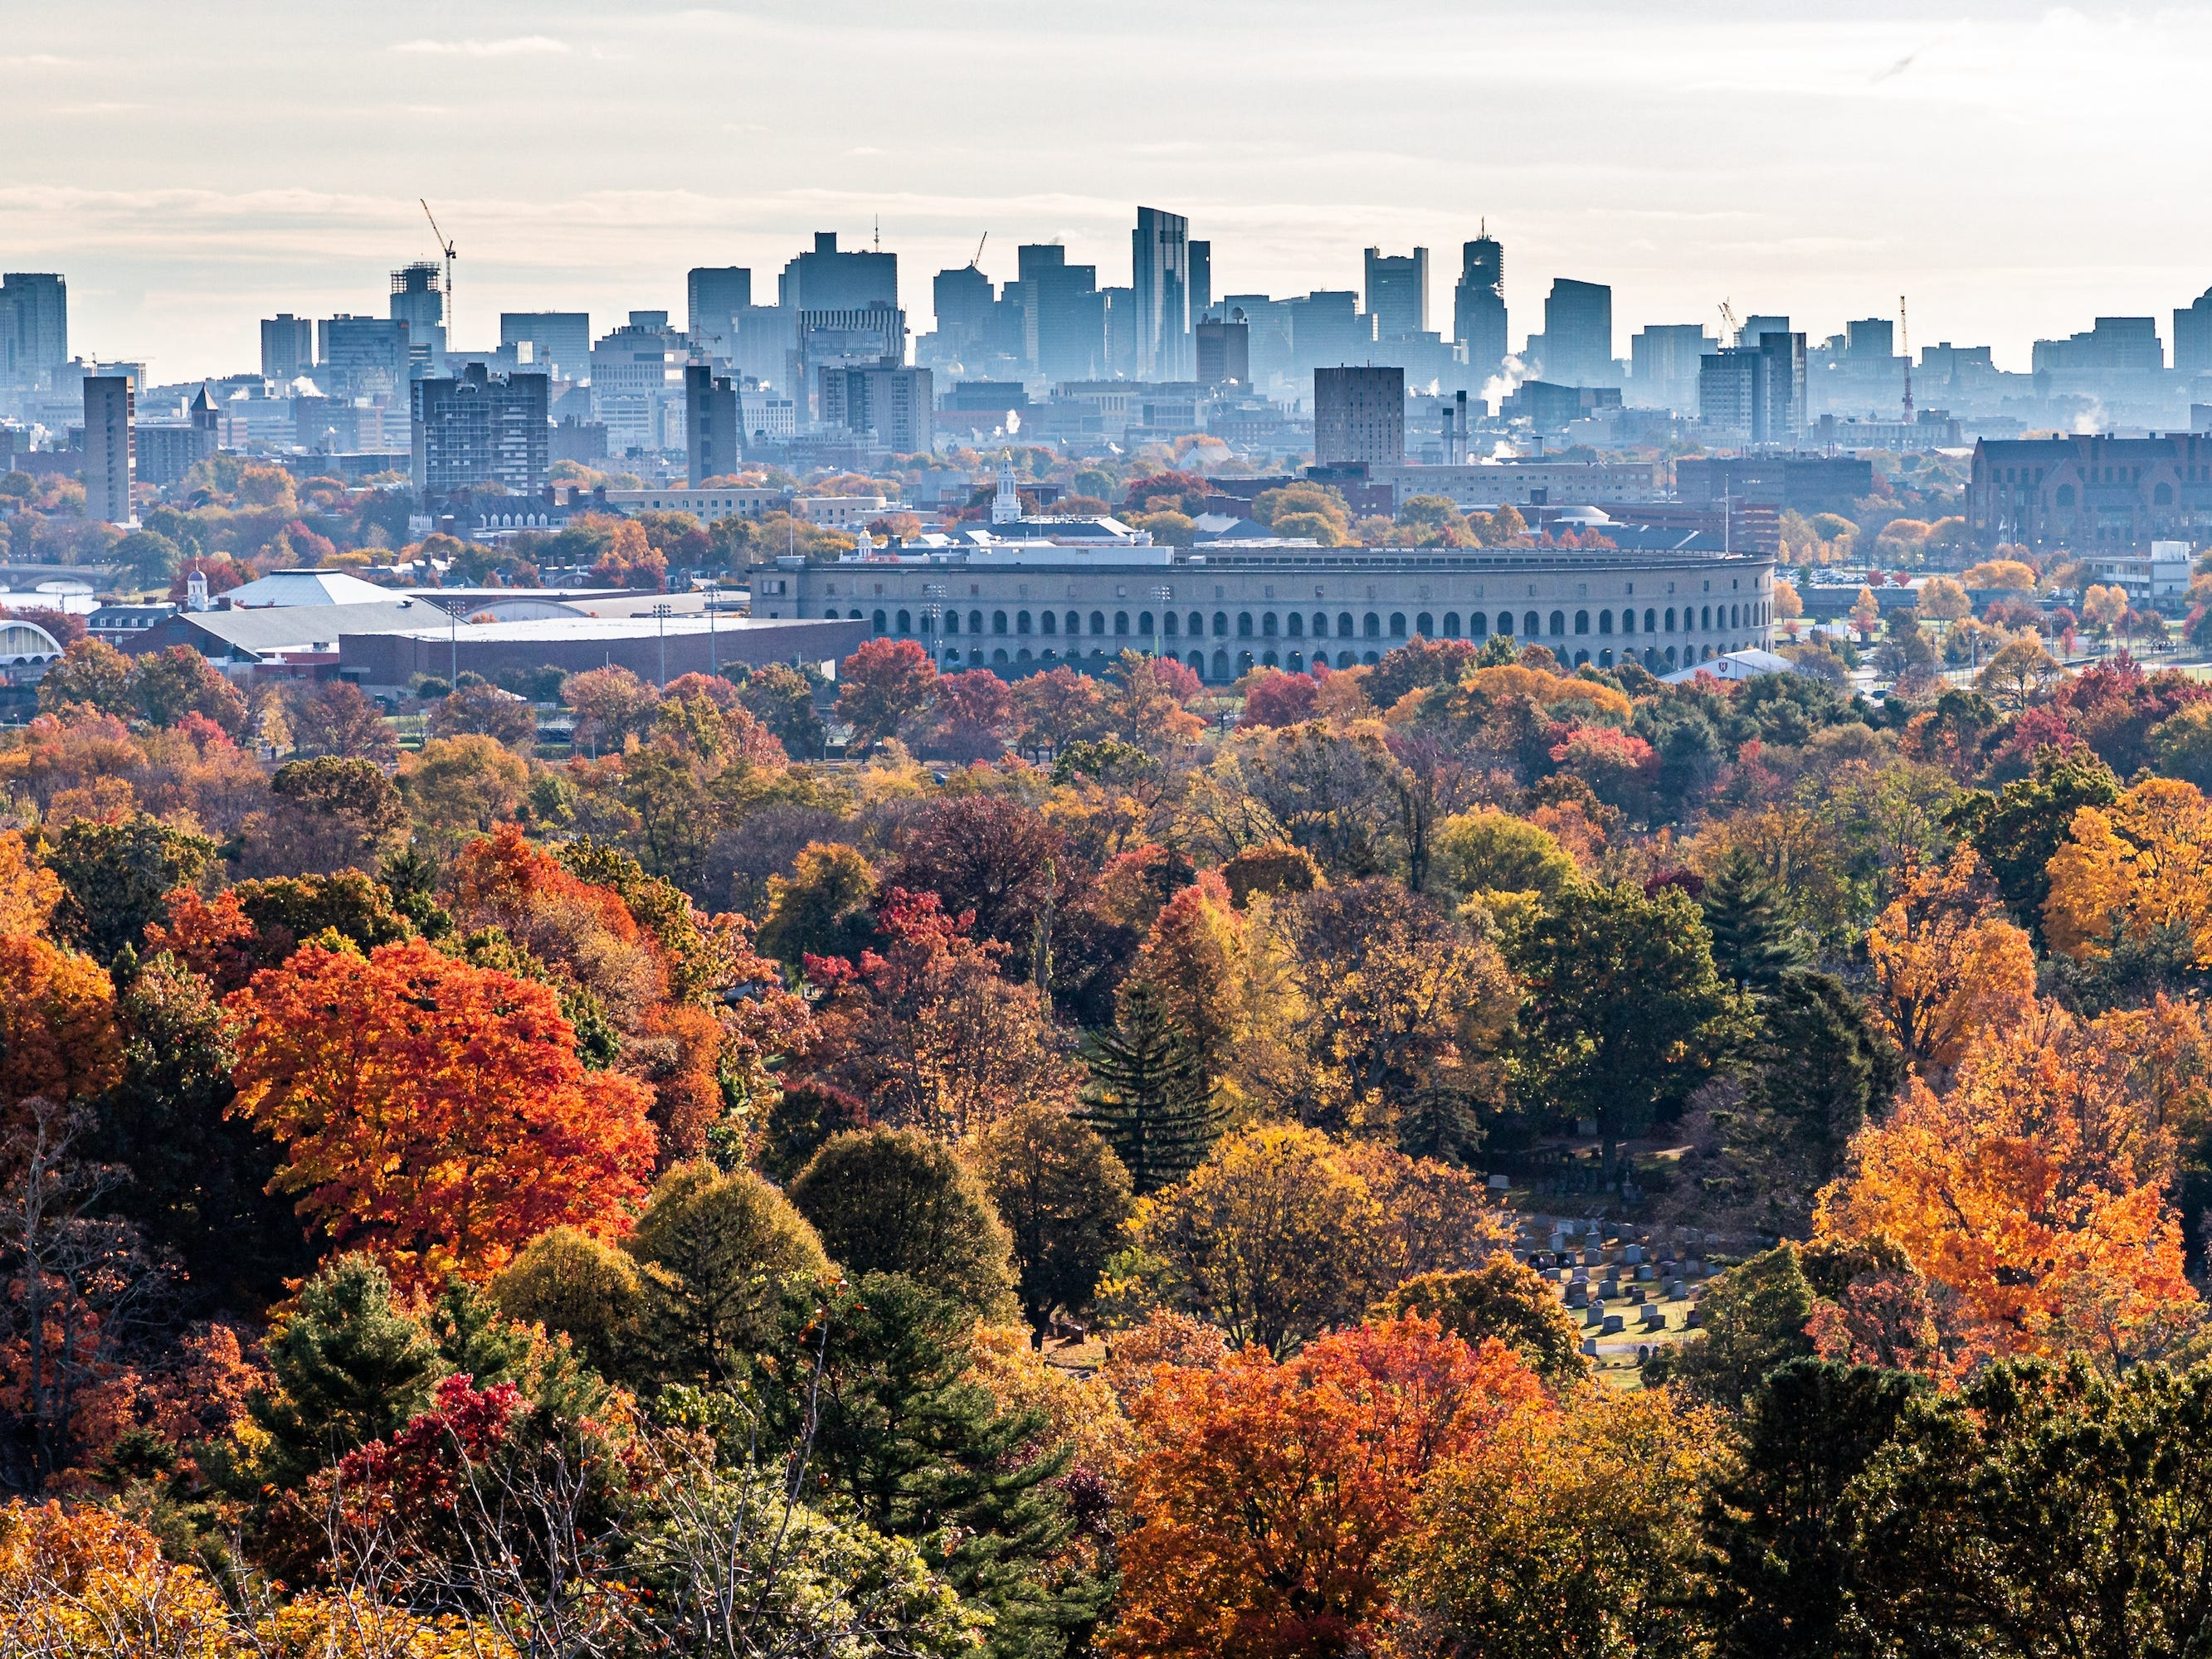 Slide 14 of 17: If you're more of a city traveler, it's hard to pick a better one than Boston in the autumn months. Like the rest of New England, the city features beautiful fall foliage.Boston is already picturesque and charming, but with the colors of autumn, it's even prettier than usual. The weather is ideal — not too hot or too cold — and there's plenty to see and do.Go shopping, get a great meal, or enjoy a historic tour of the city.